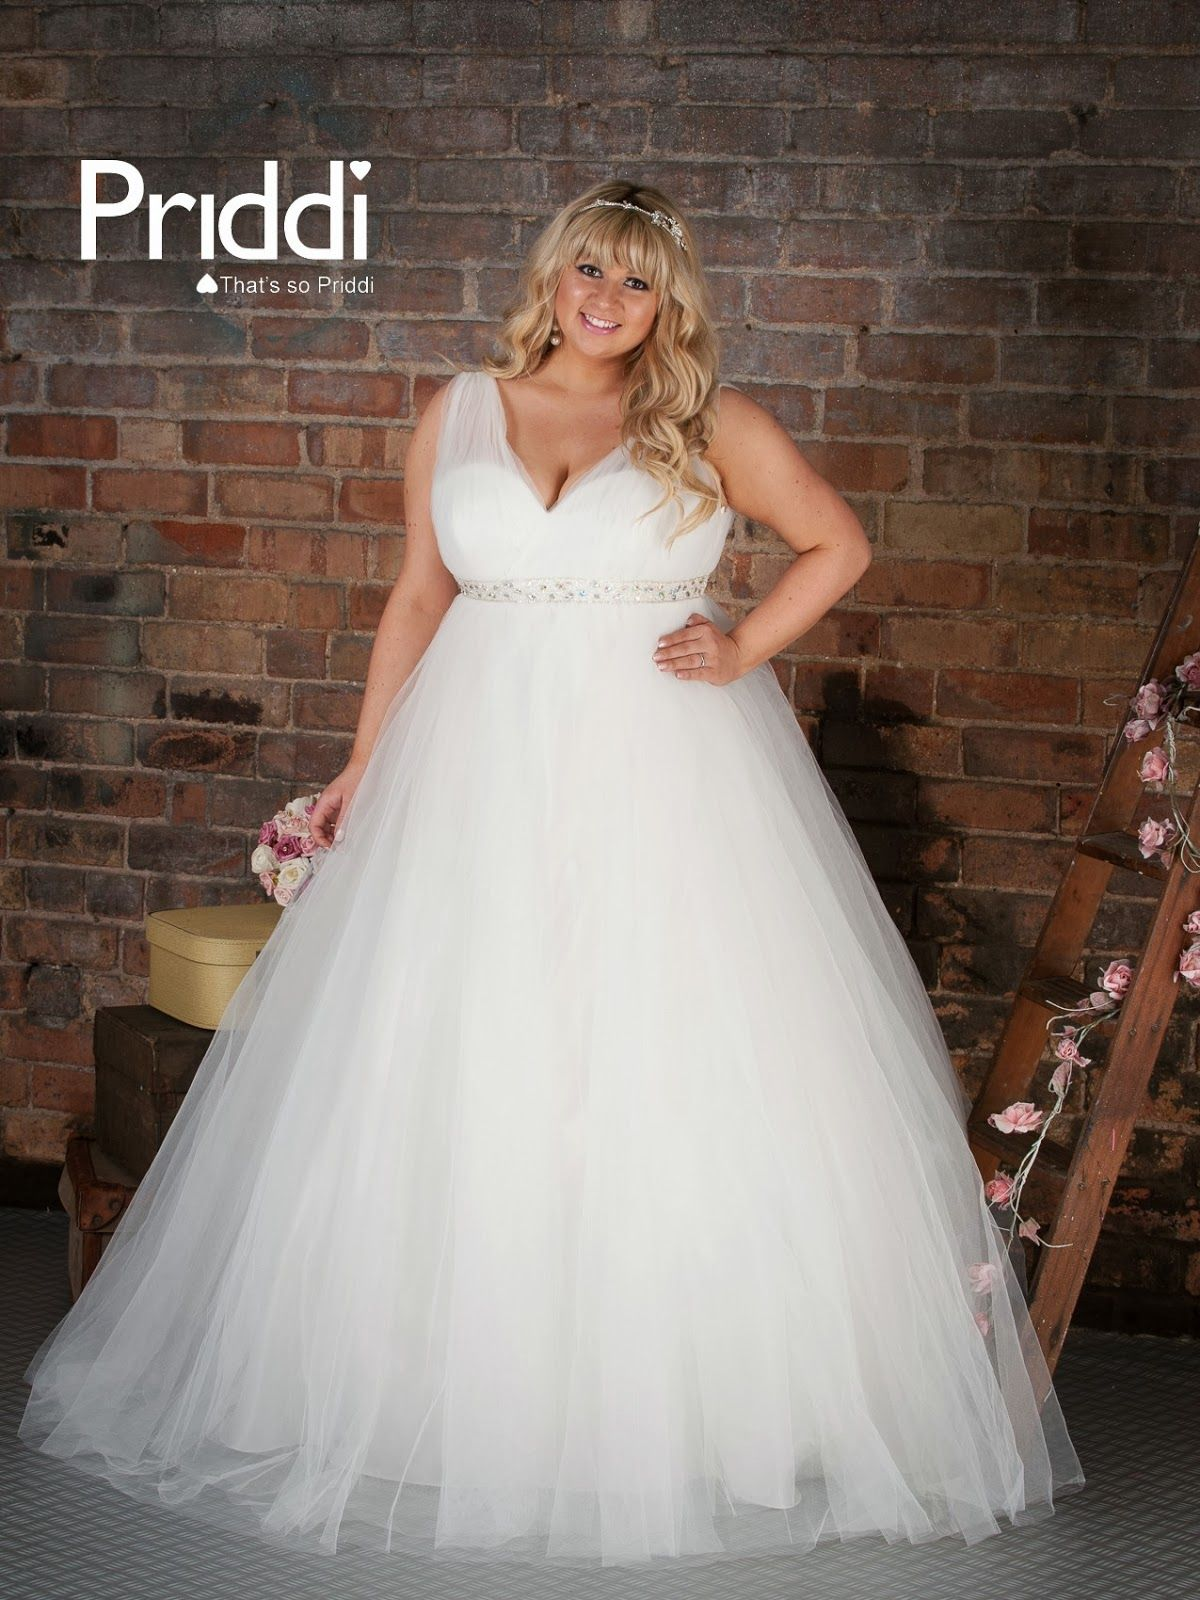 plus size wedding dresses ball gown - Google Search | wedding ...